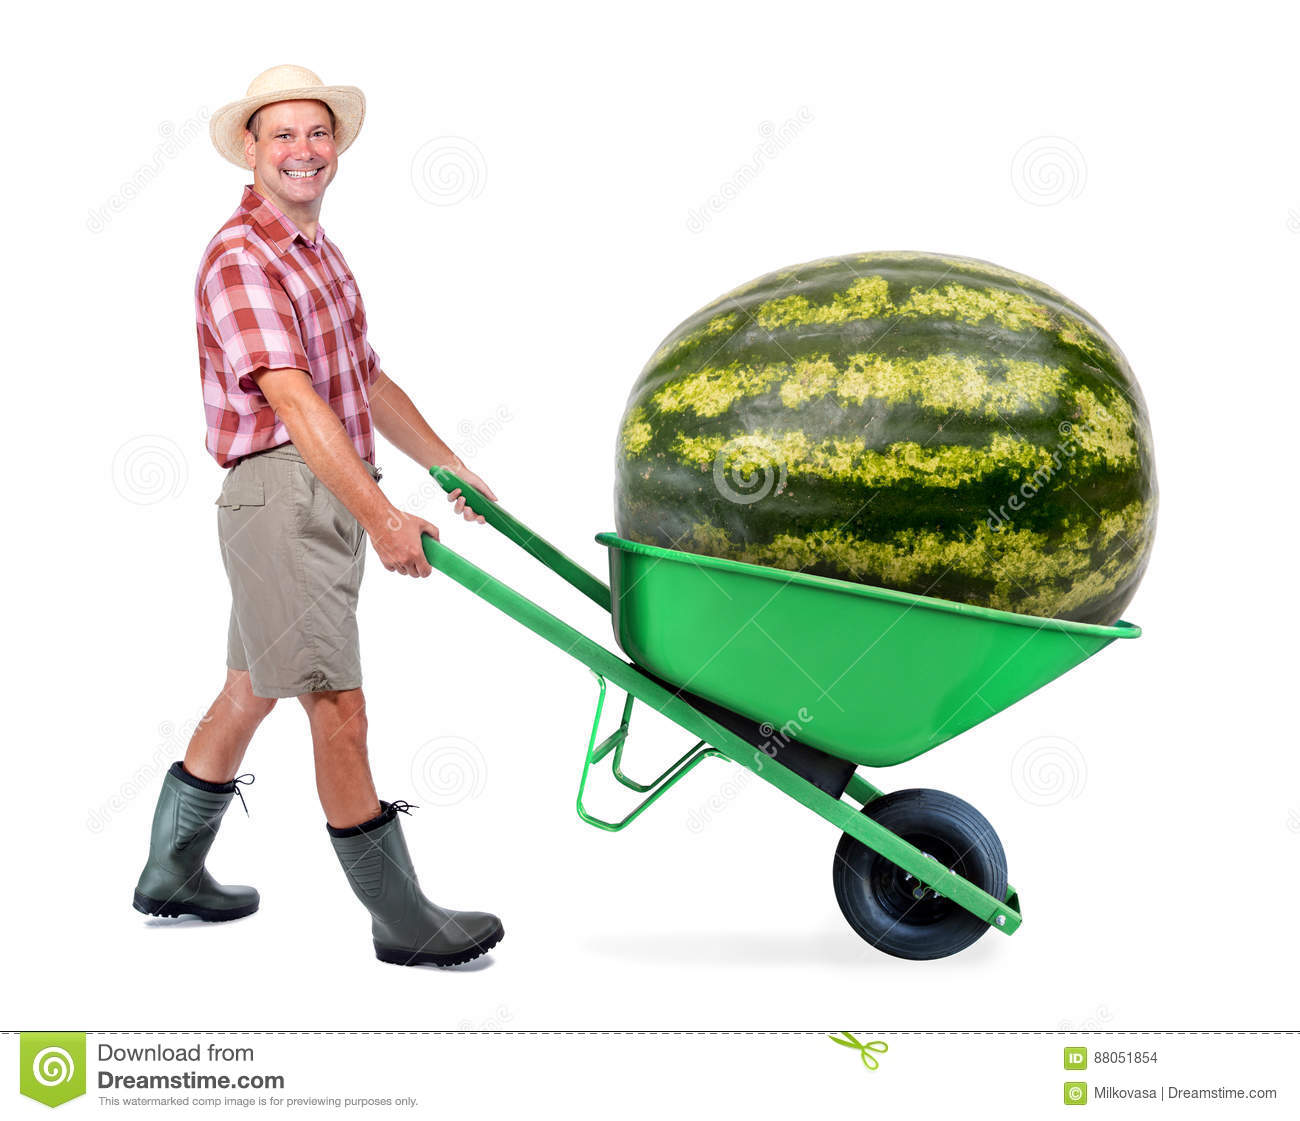 Cheerful gardener carrying a large watermelon